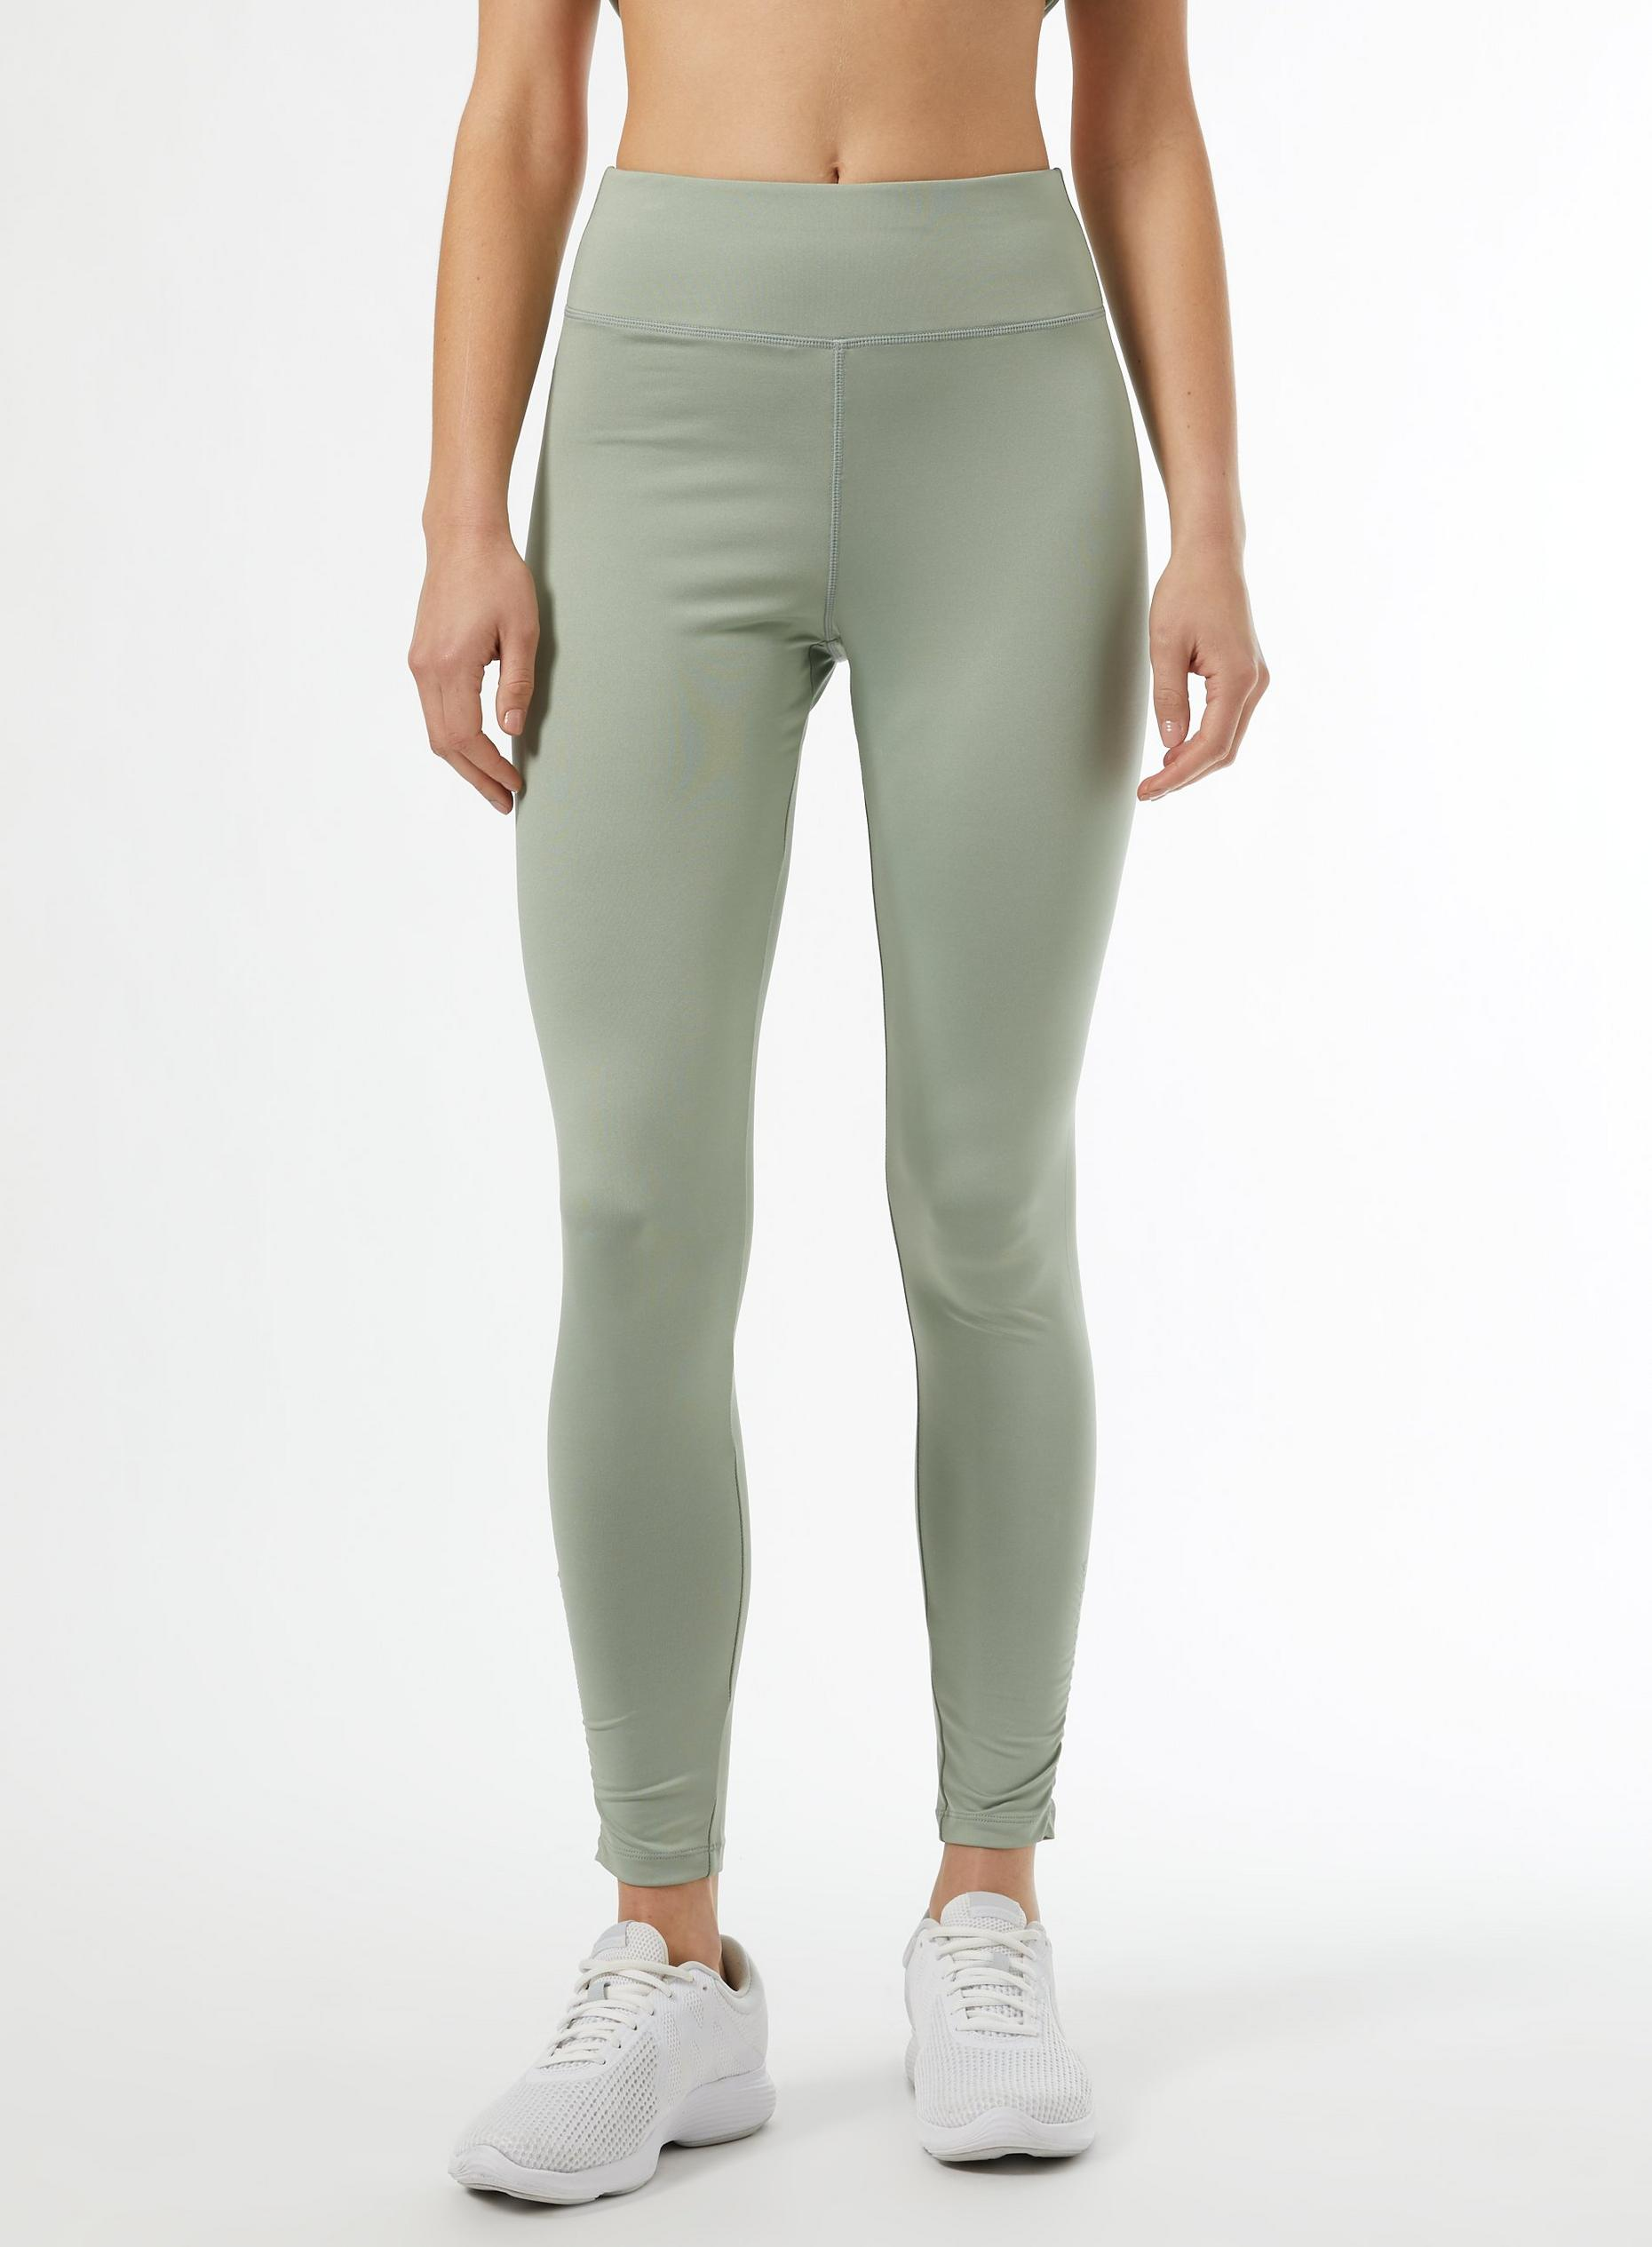 Sage Ruched Ankle Yoga Leggings